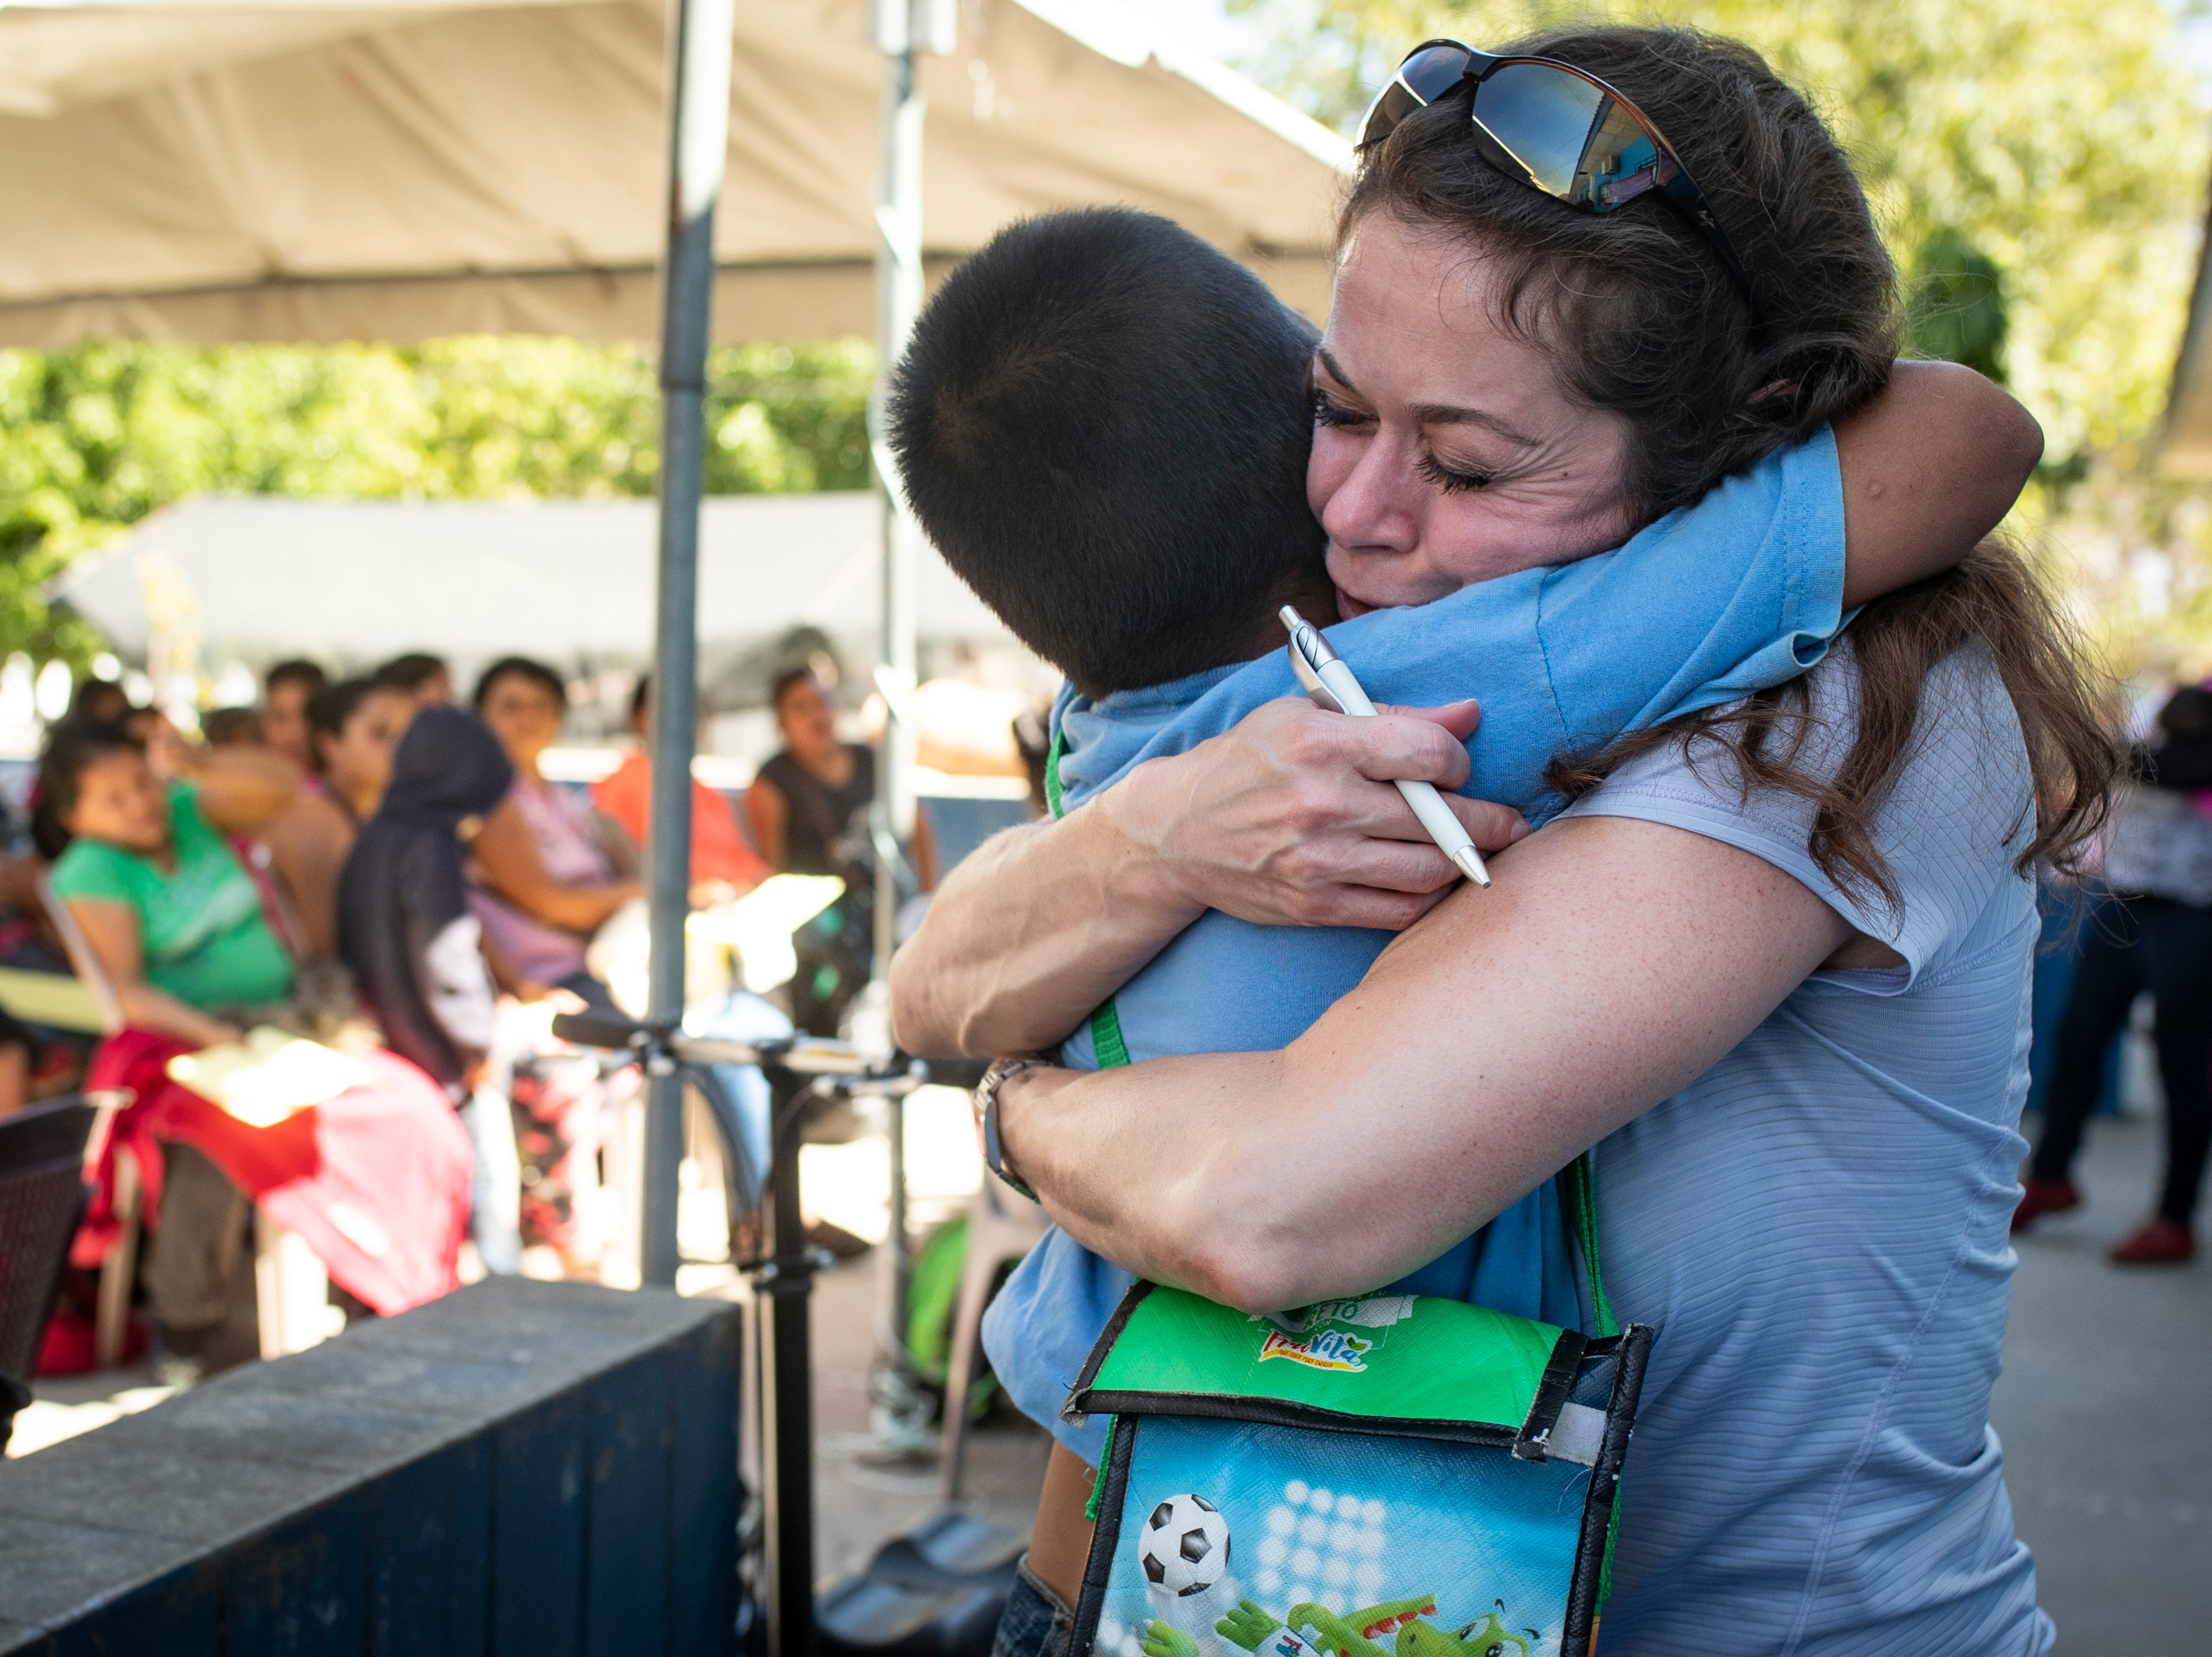 COTA triage coordinator Nancy Vasto gives a big hug goodbye to a patient in Salamá, Guatemala. Jan. 20, 2019